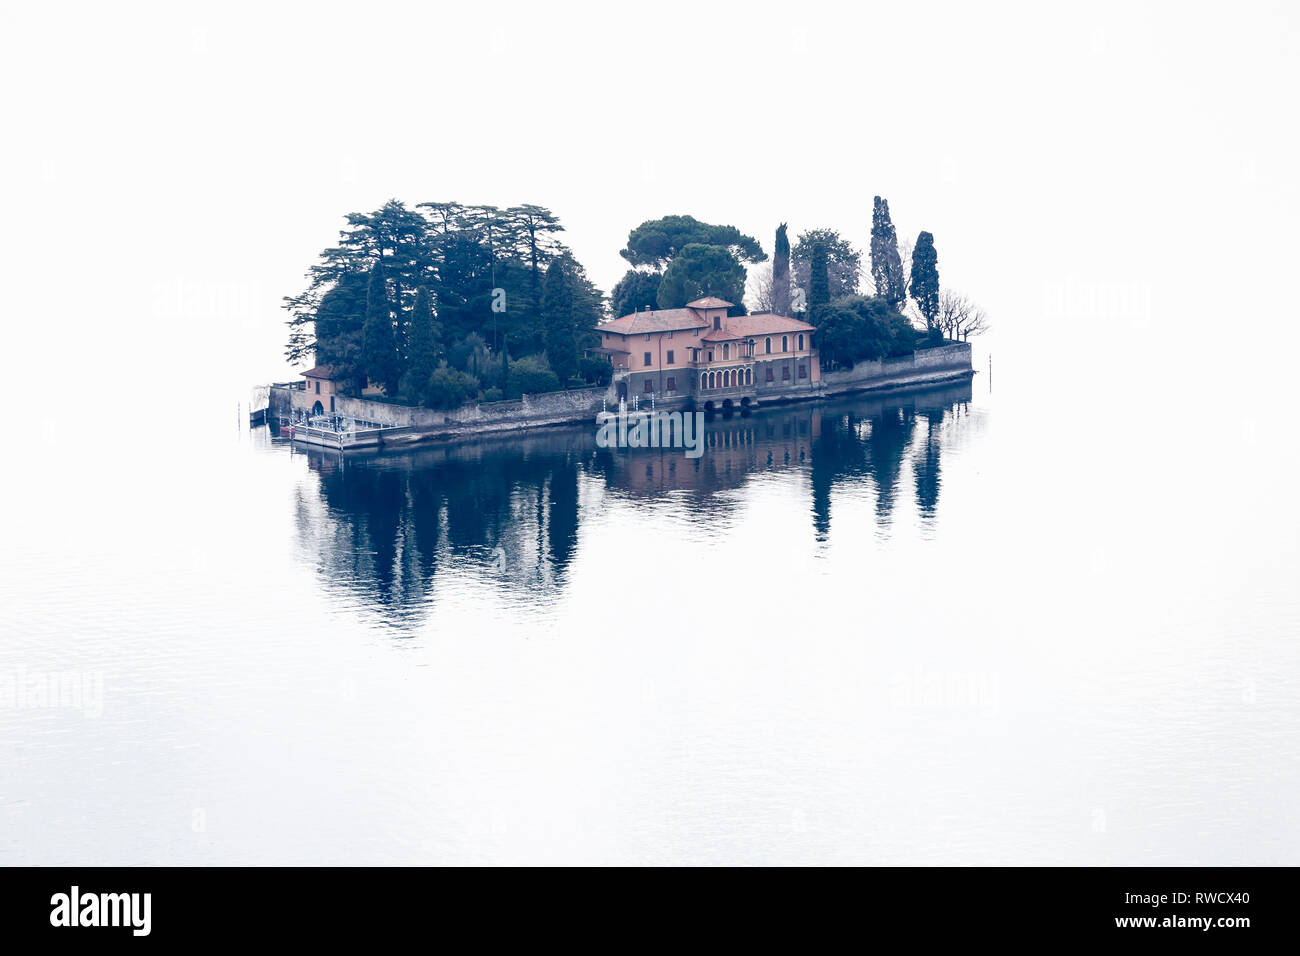 Isola di San Paolo isle, Monte Isola, Iseo Lake, Lombardy, Italy - Stock Image